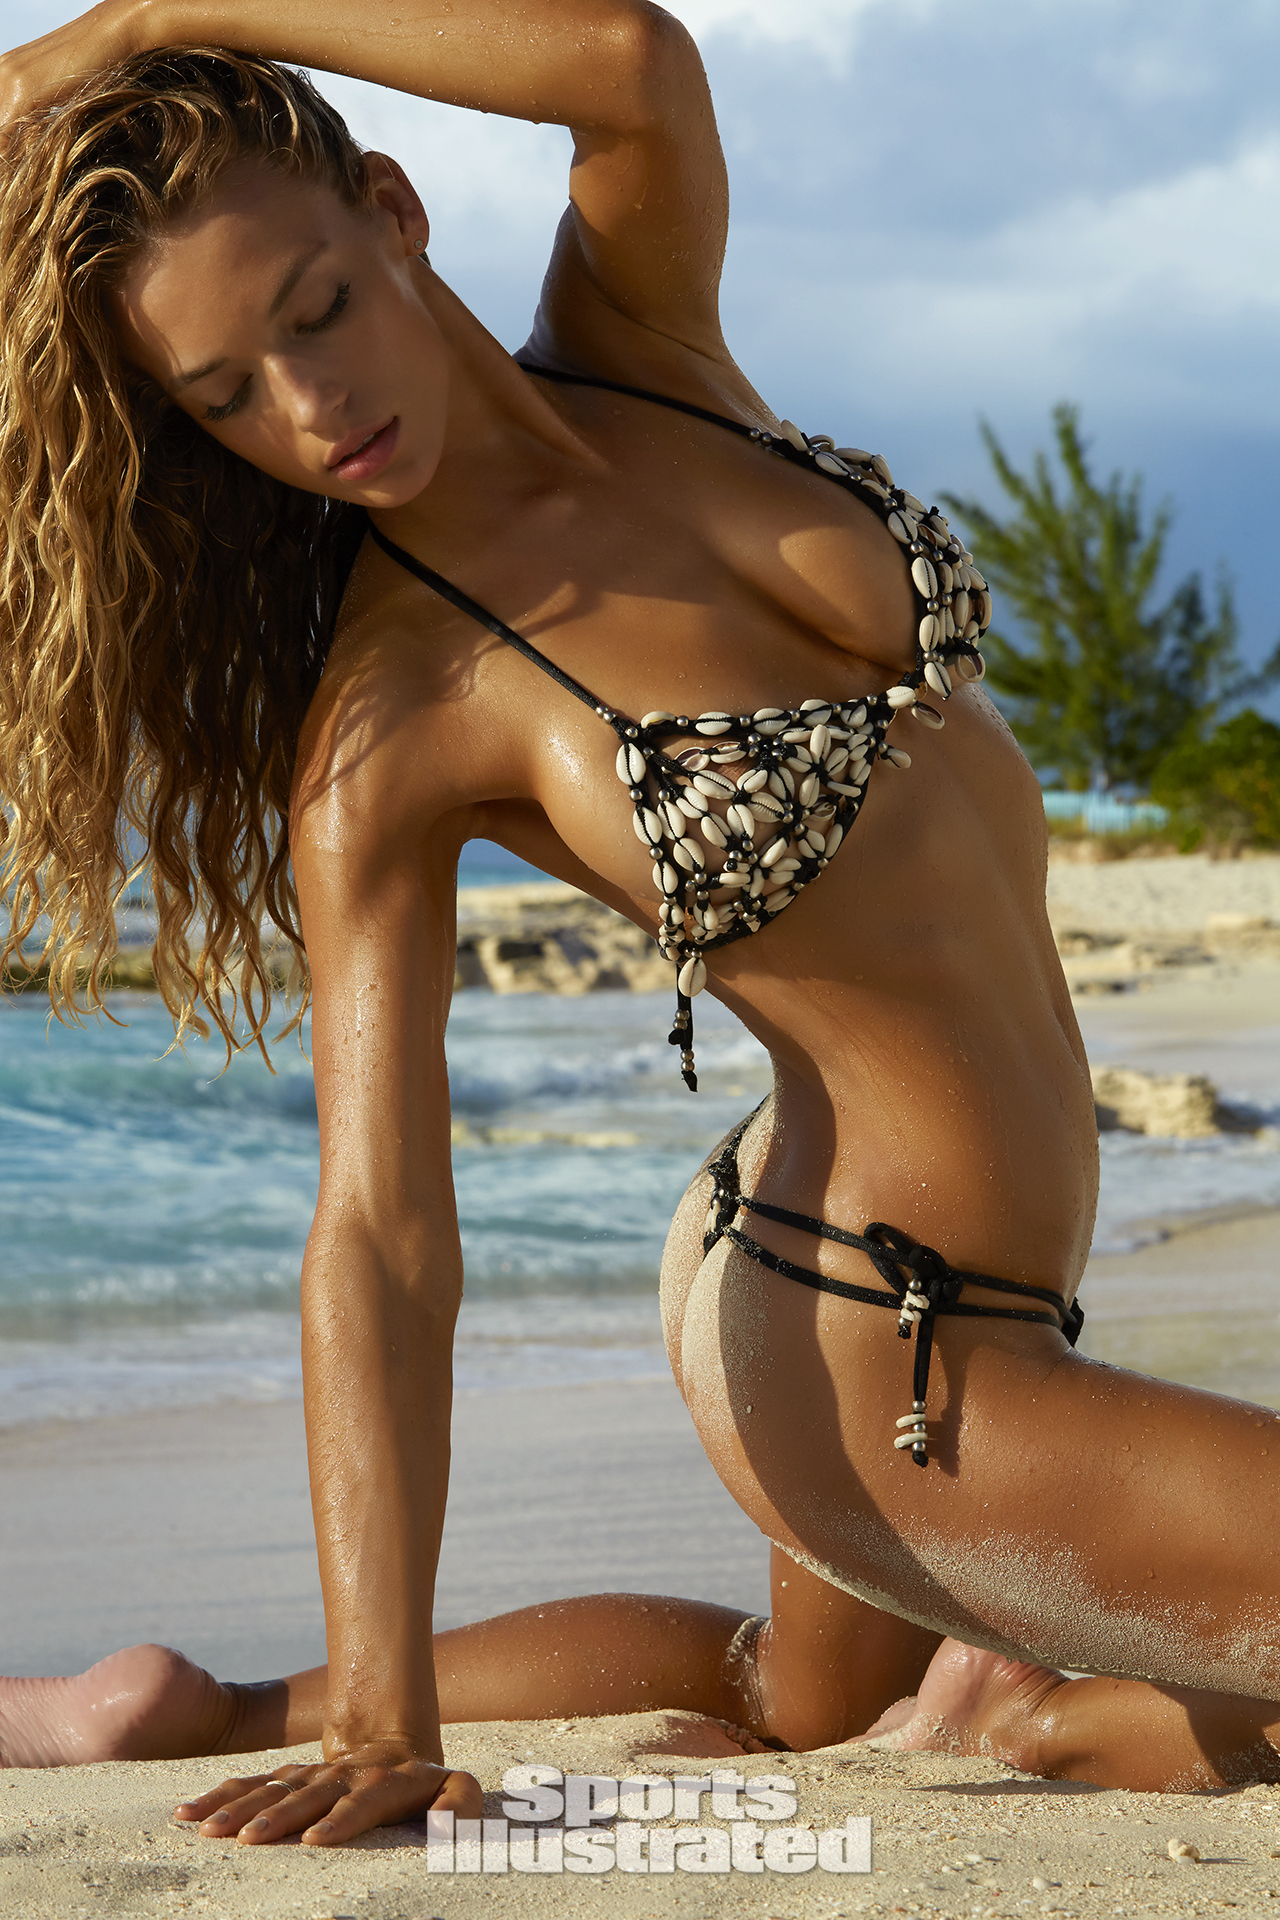 Hannah Ferguson was photographed by James Macari in Turks & Caicos. Swimsuit by Heidi Fish.